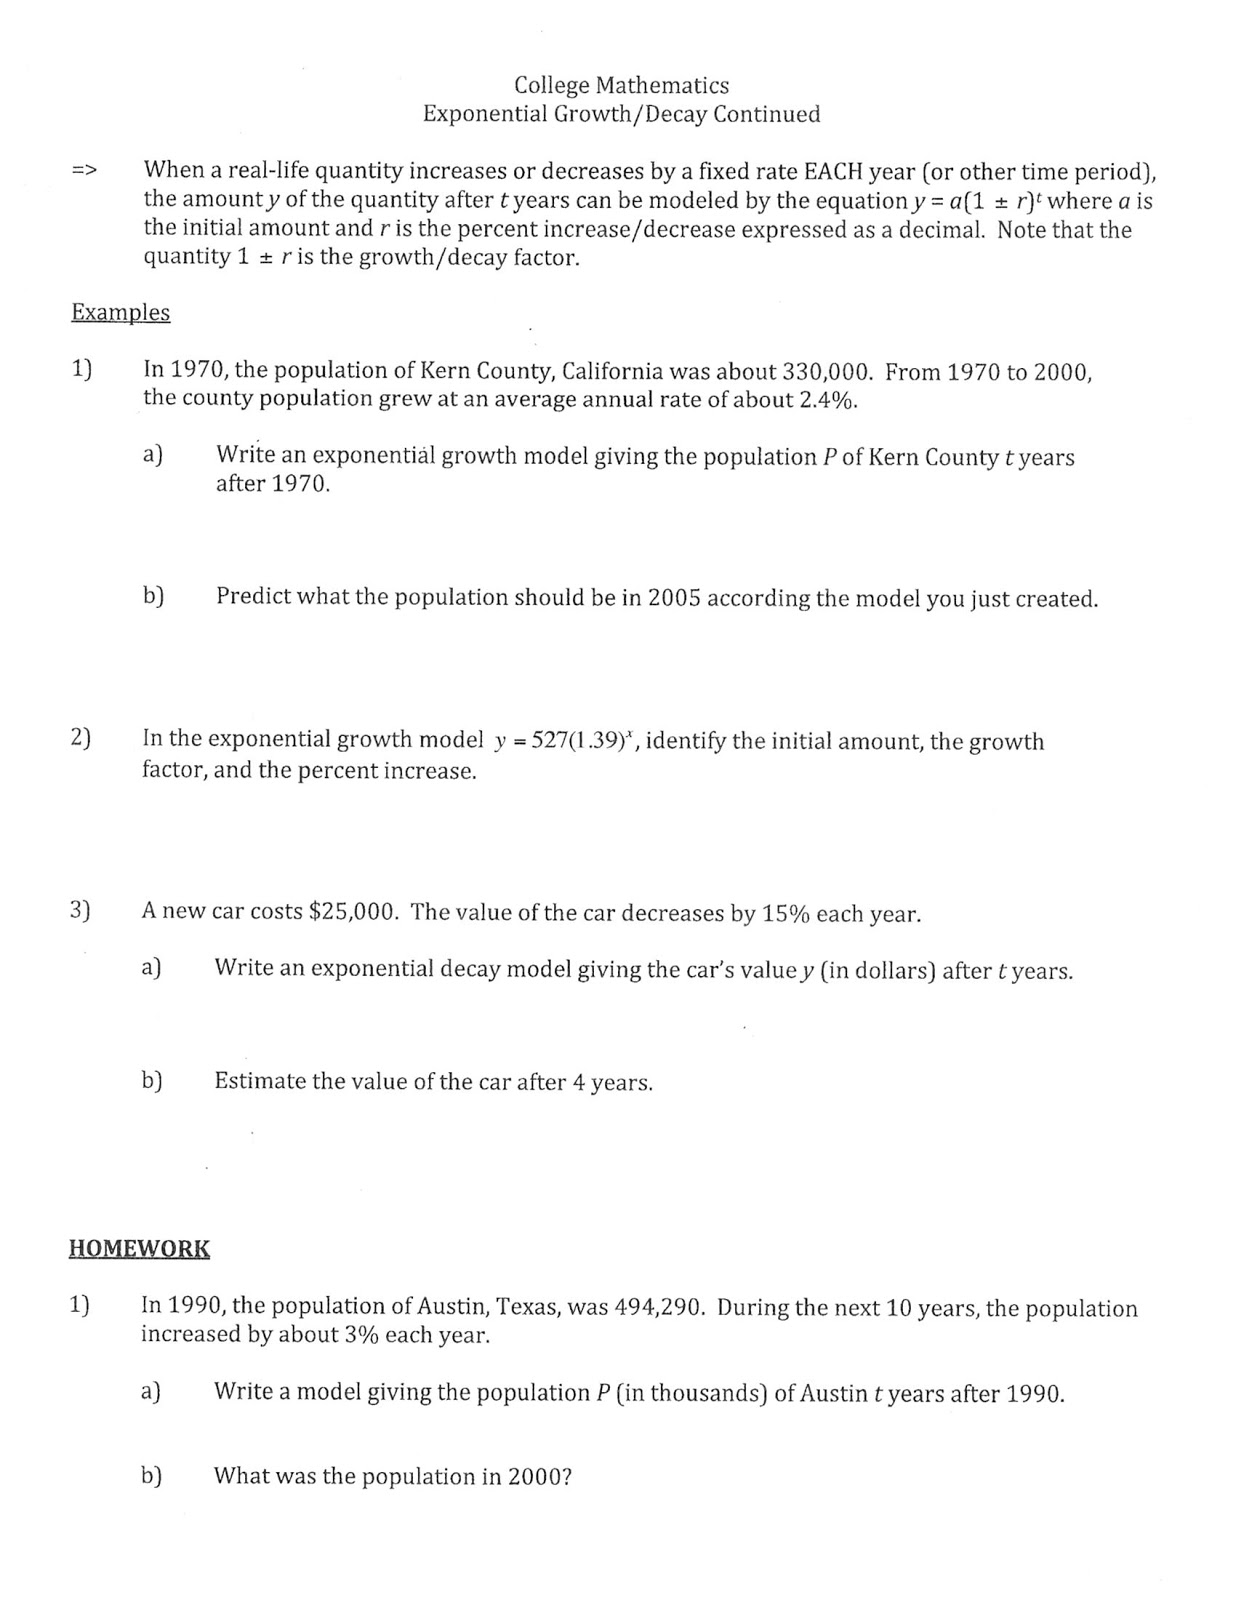 Printables Exponential Growth And Decay Worksheet mr suominens math homepage february 2013 answers to the graphing exponential decay worksheet and word problems given out today covering using growth decay